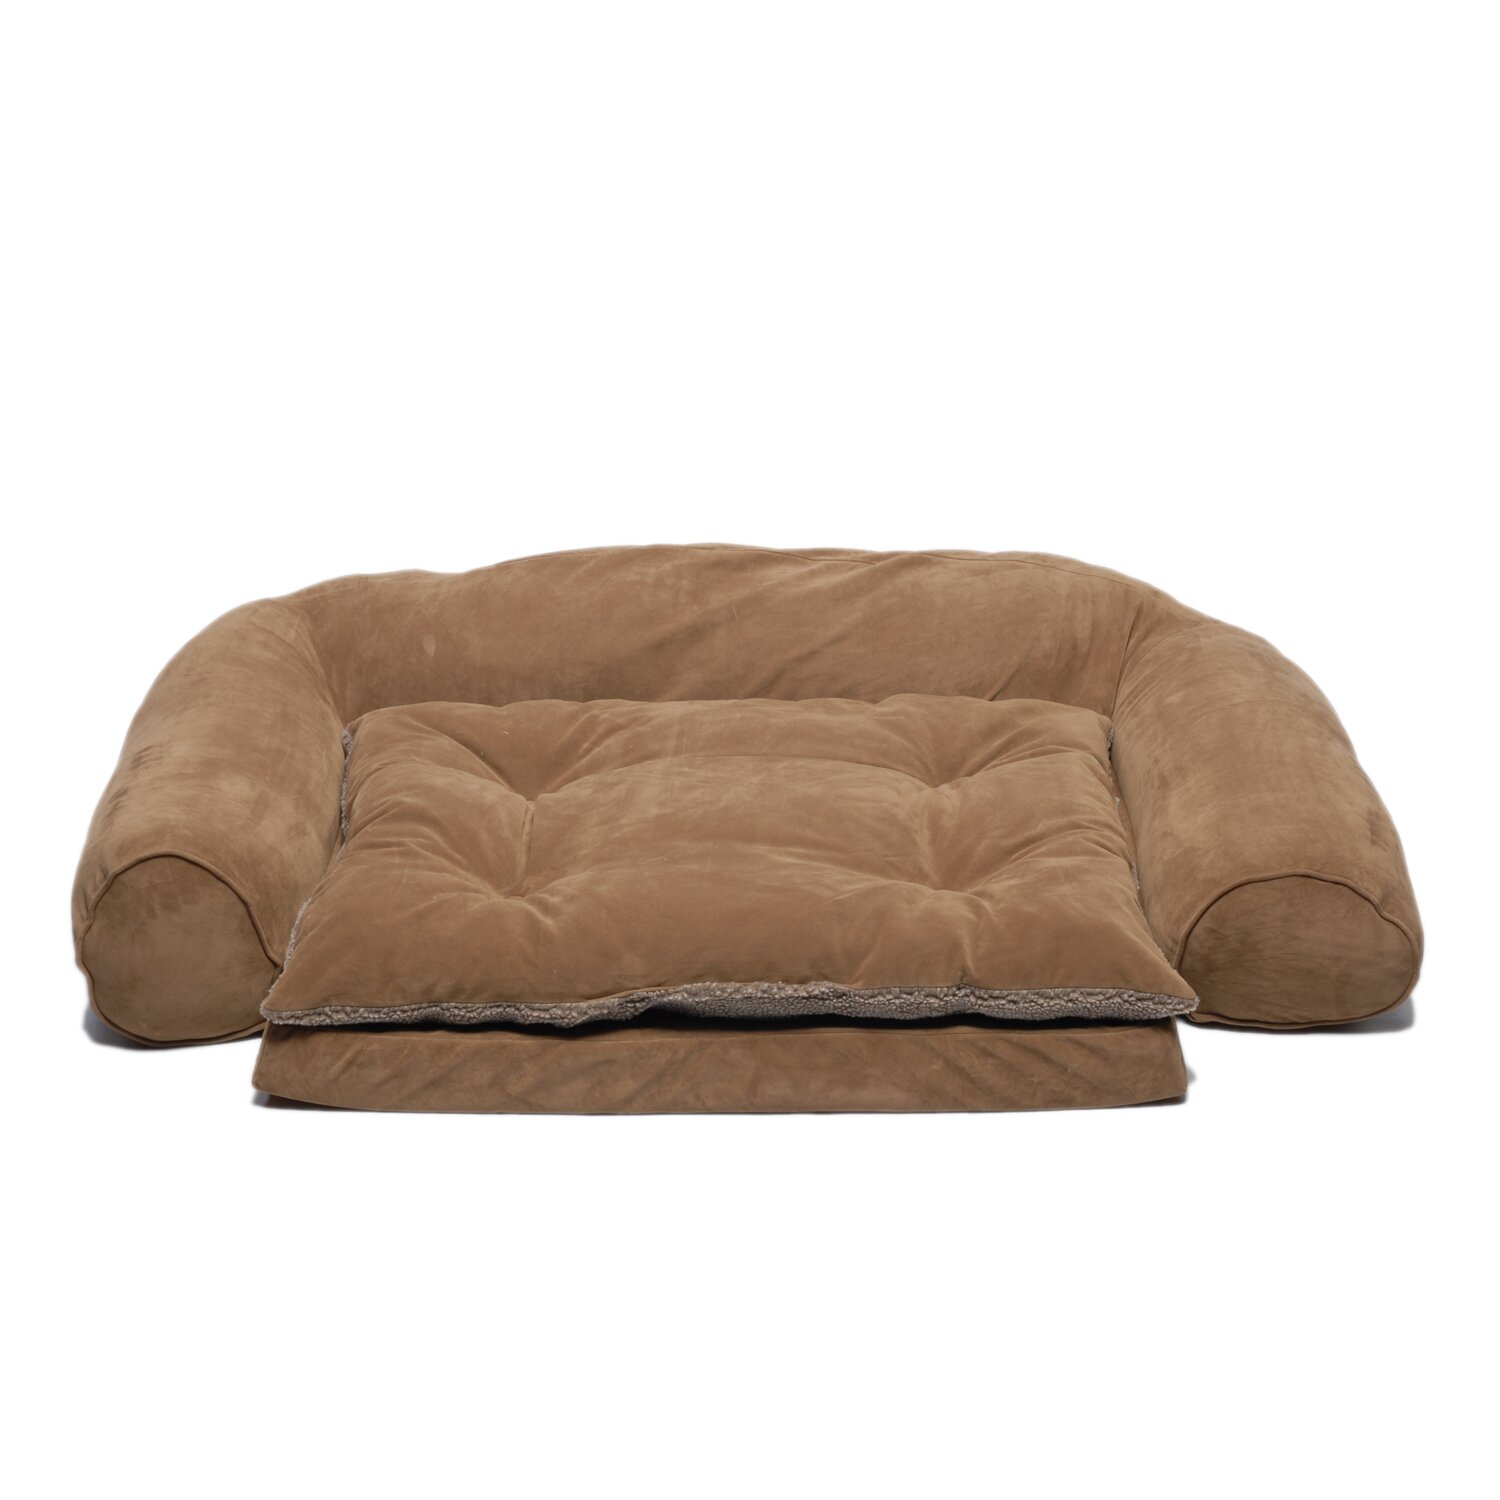 Zoey Tails Ortho Sleeper Comfort Couch Dog Bed In Chocolate Reviews